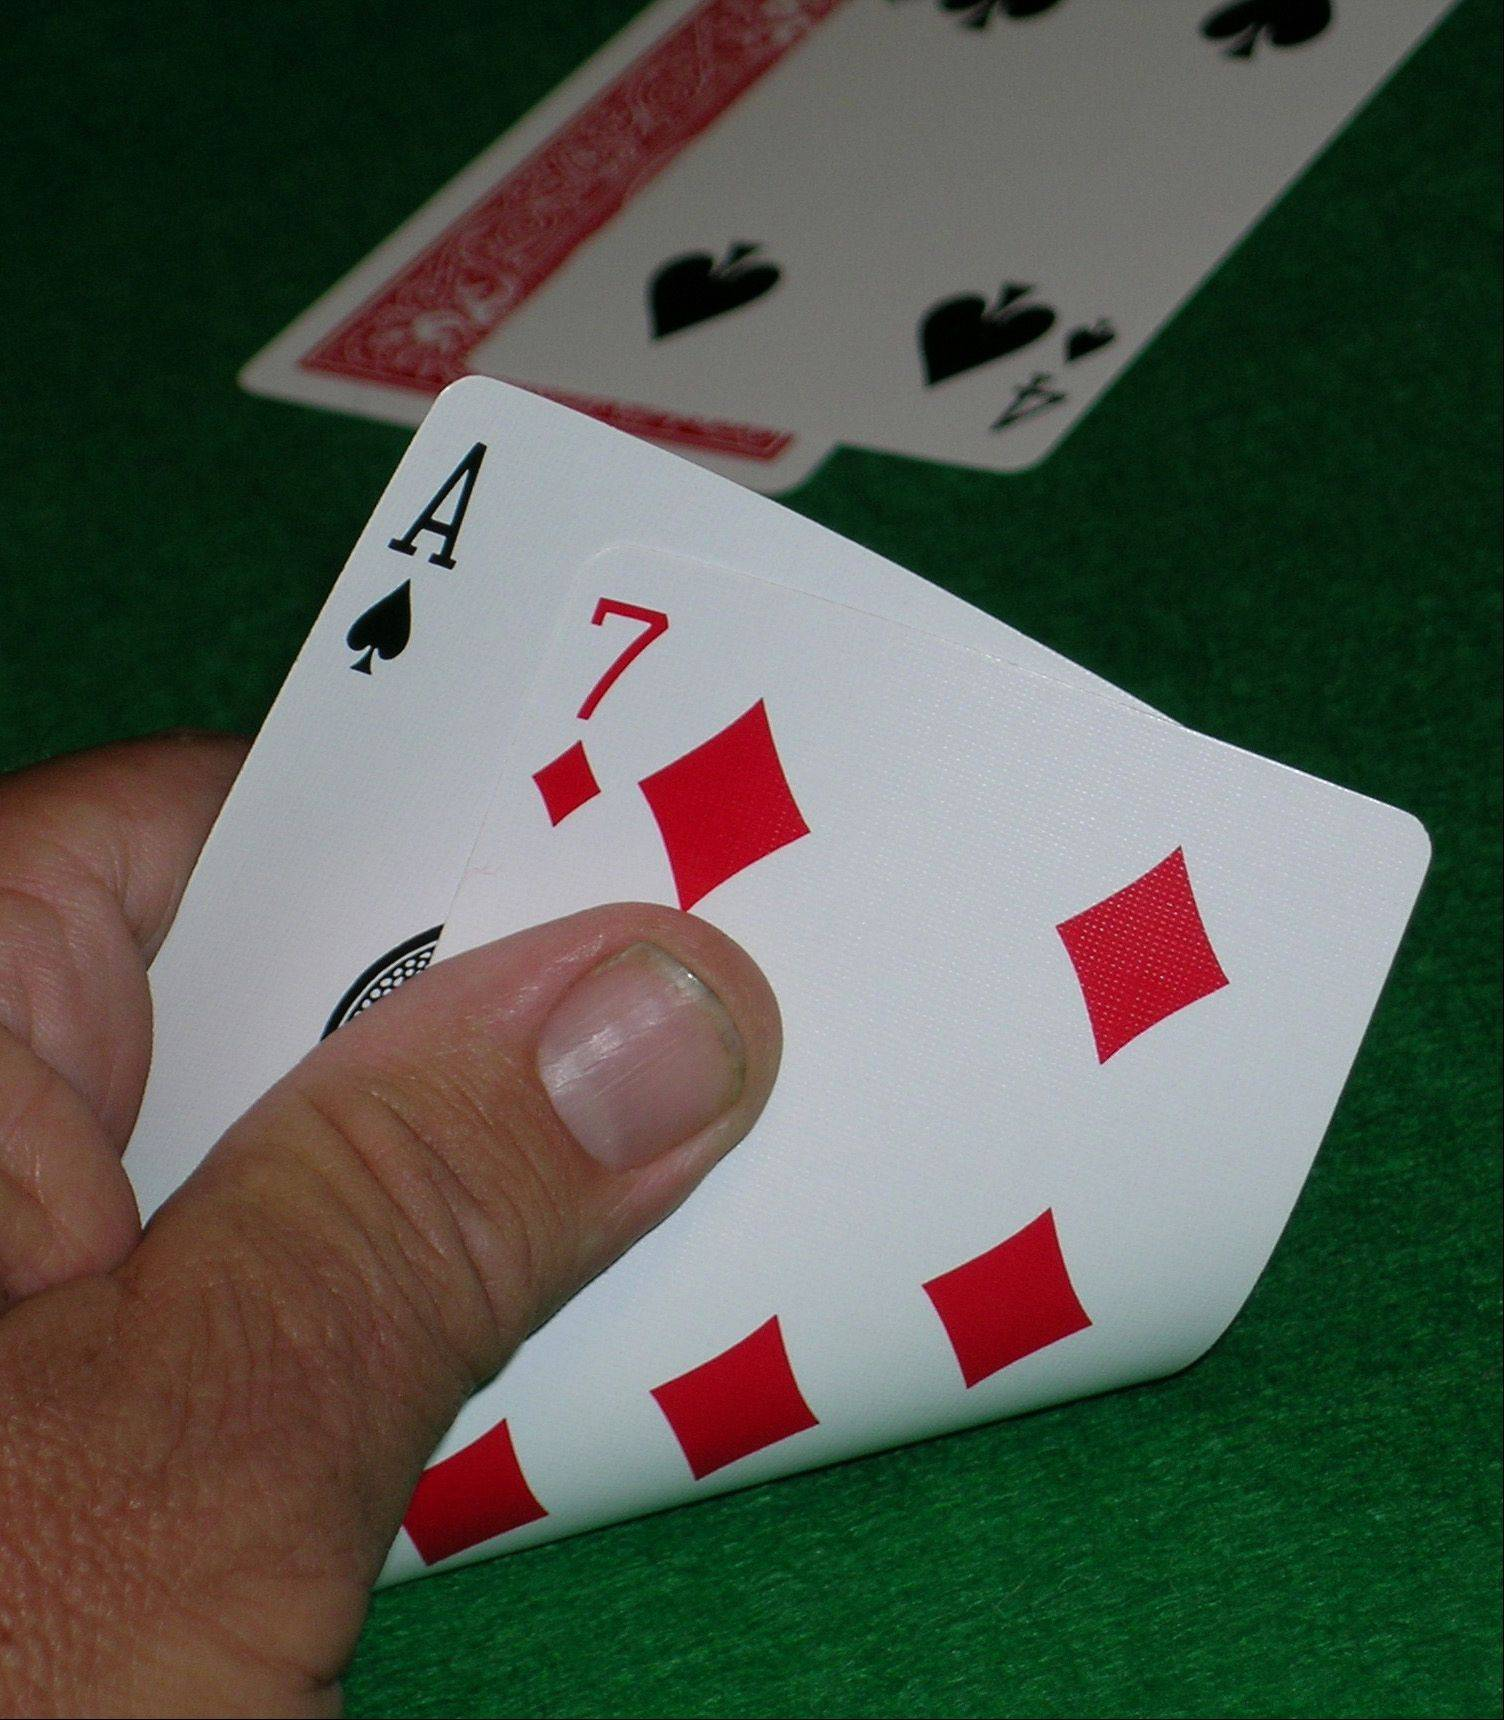 Casino operators in Illinois say they are losing revenue to casinos in neighboring states by not staying open 24 hours a day.